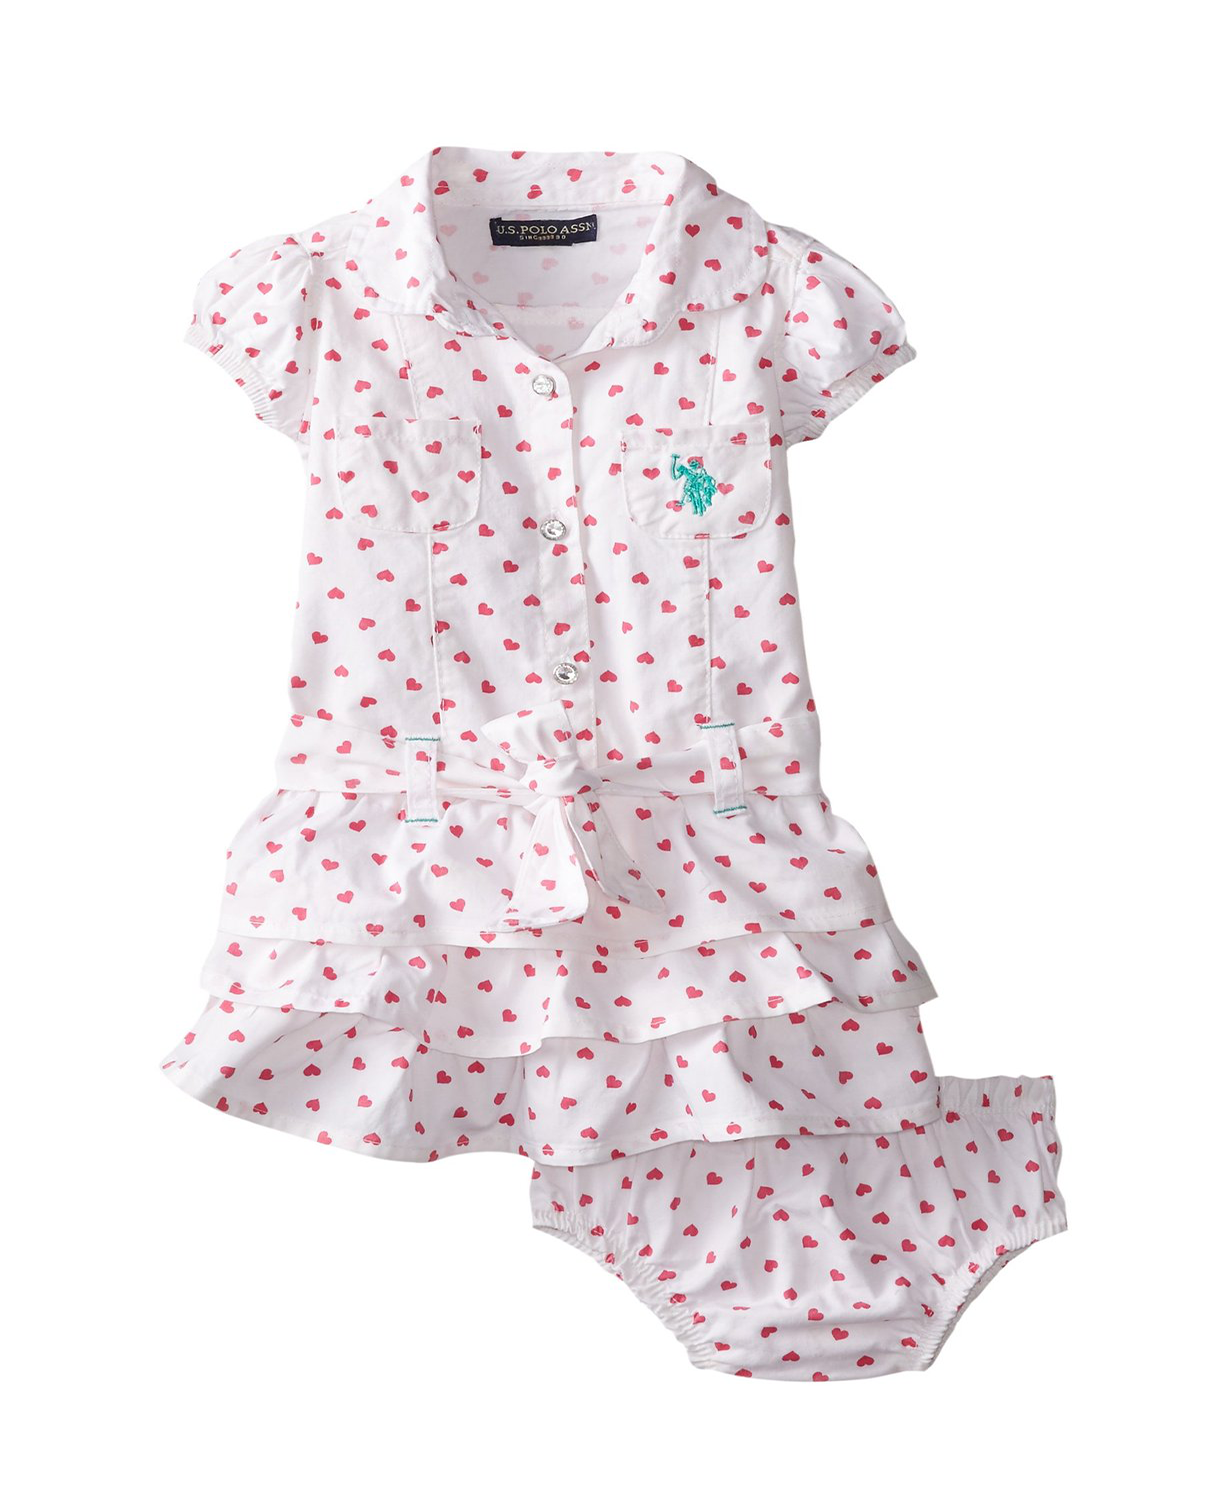 Baby Clothing for Girls. For the most adorable baby looks, shop the full selection of baby girl clothes at Kohl's. No matter the style or the season, Kohl's has .